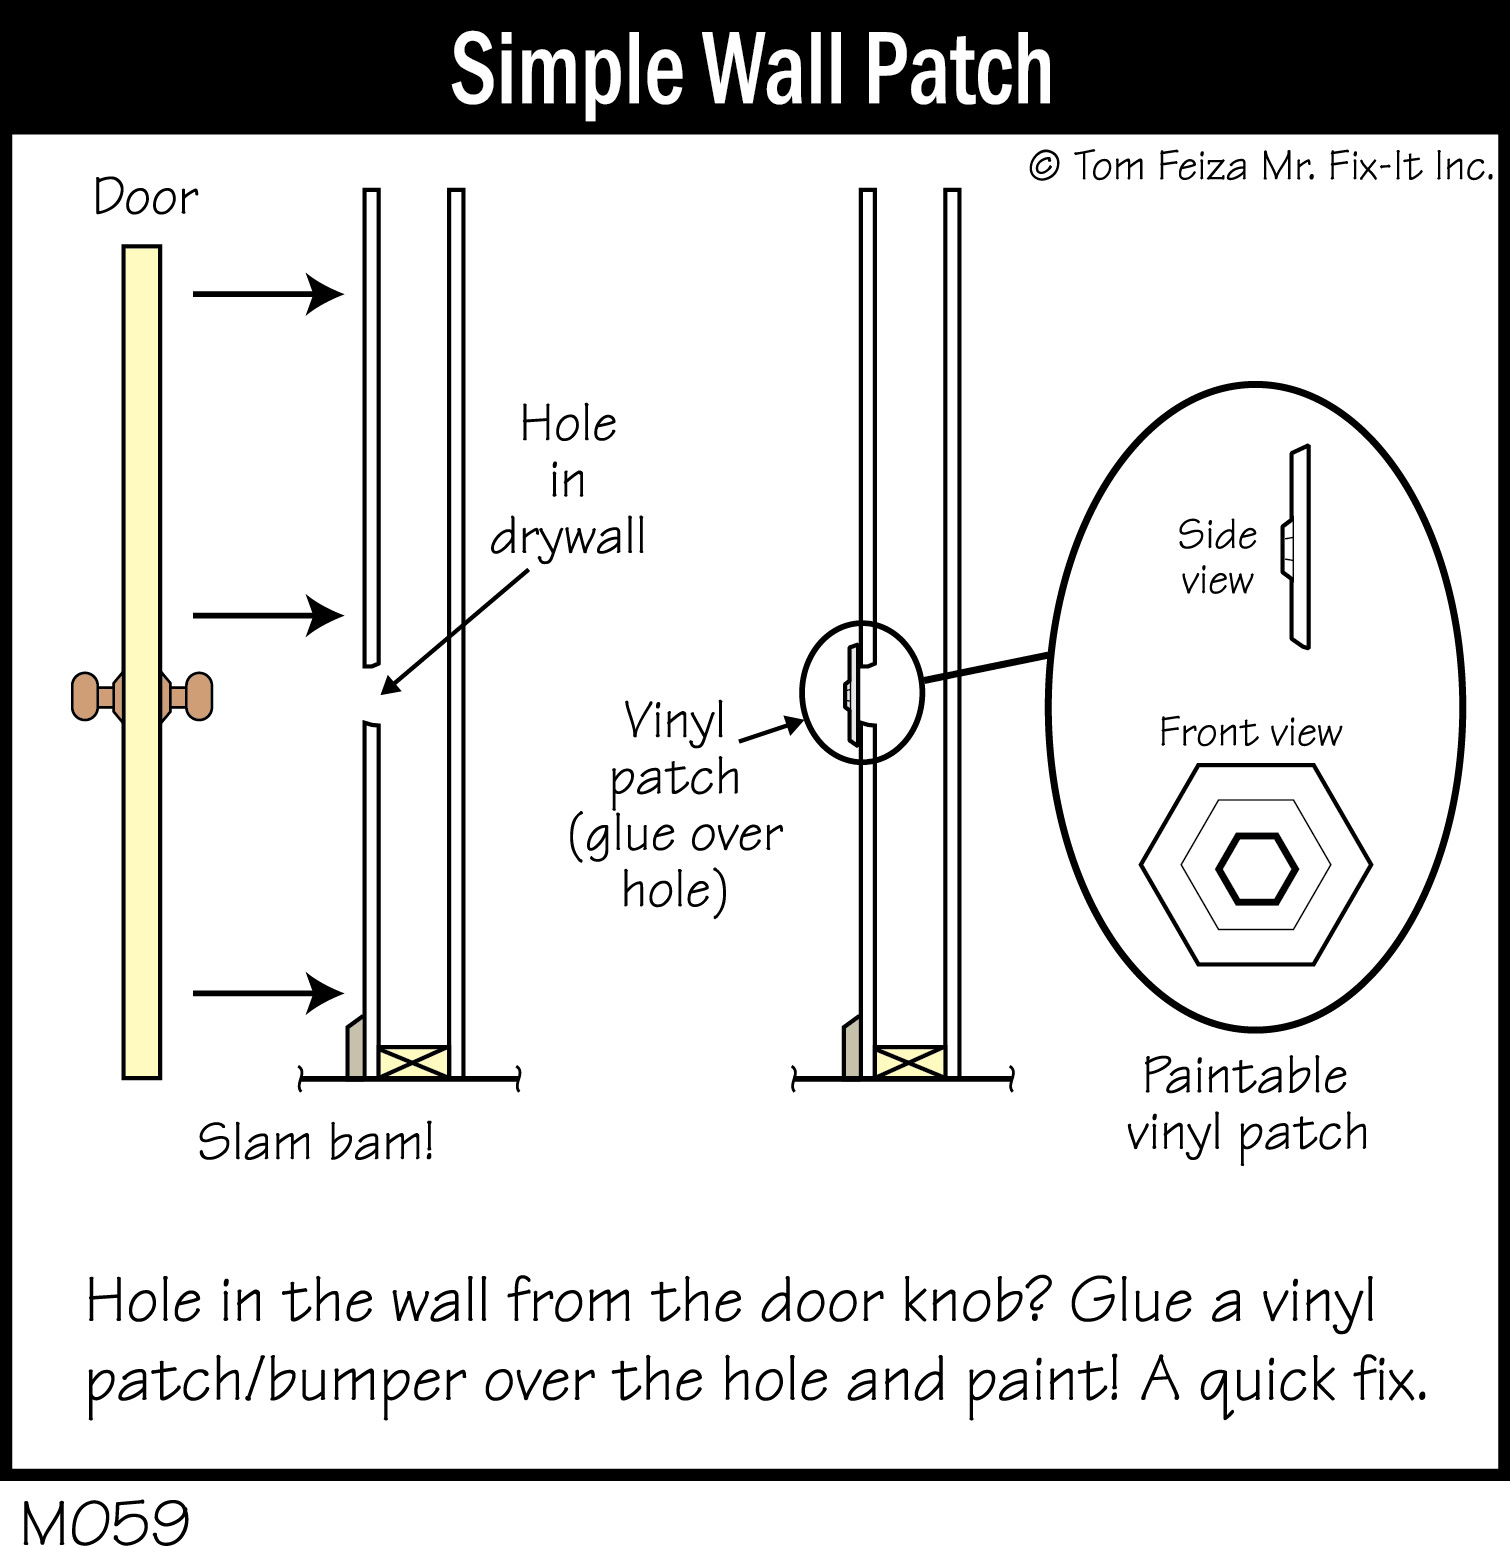 M059C - Simple Wall Patch_300dpi  sc 1 st  Tom Feiza & Quick Tip #29 \u2013 Patch the Hole Behind the Door | MisterFix-It.com